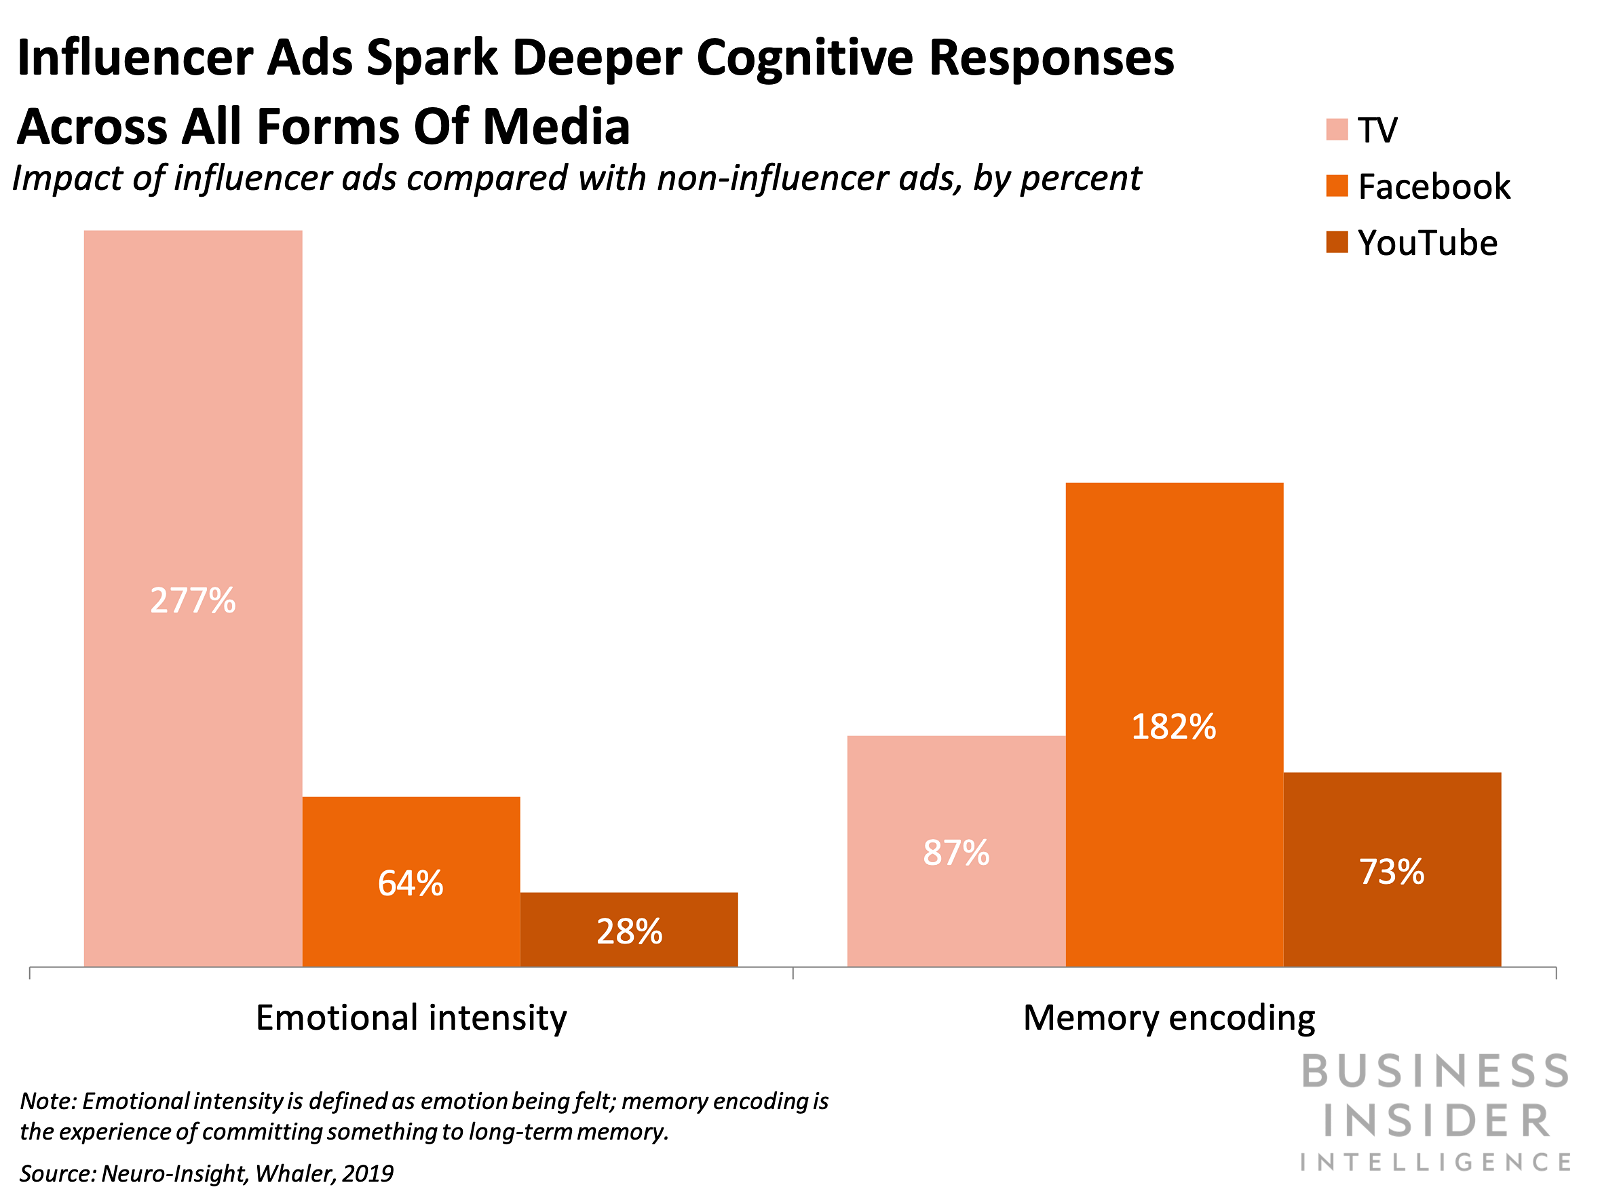 Consumers have higher emotional responses to and recollection of influencer ads than other ad types.